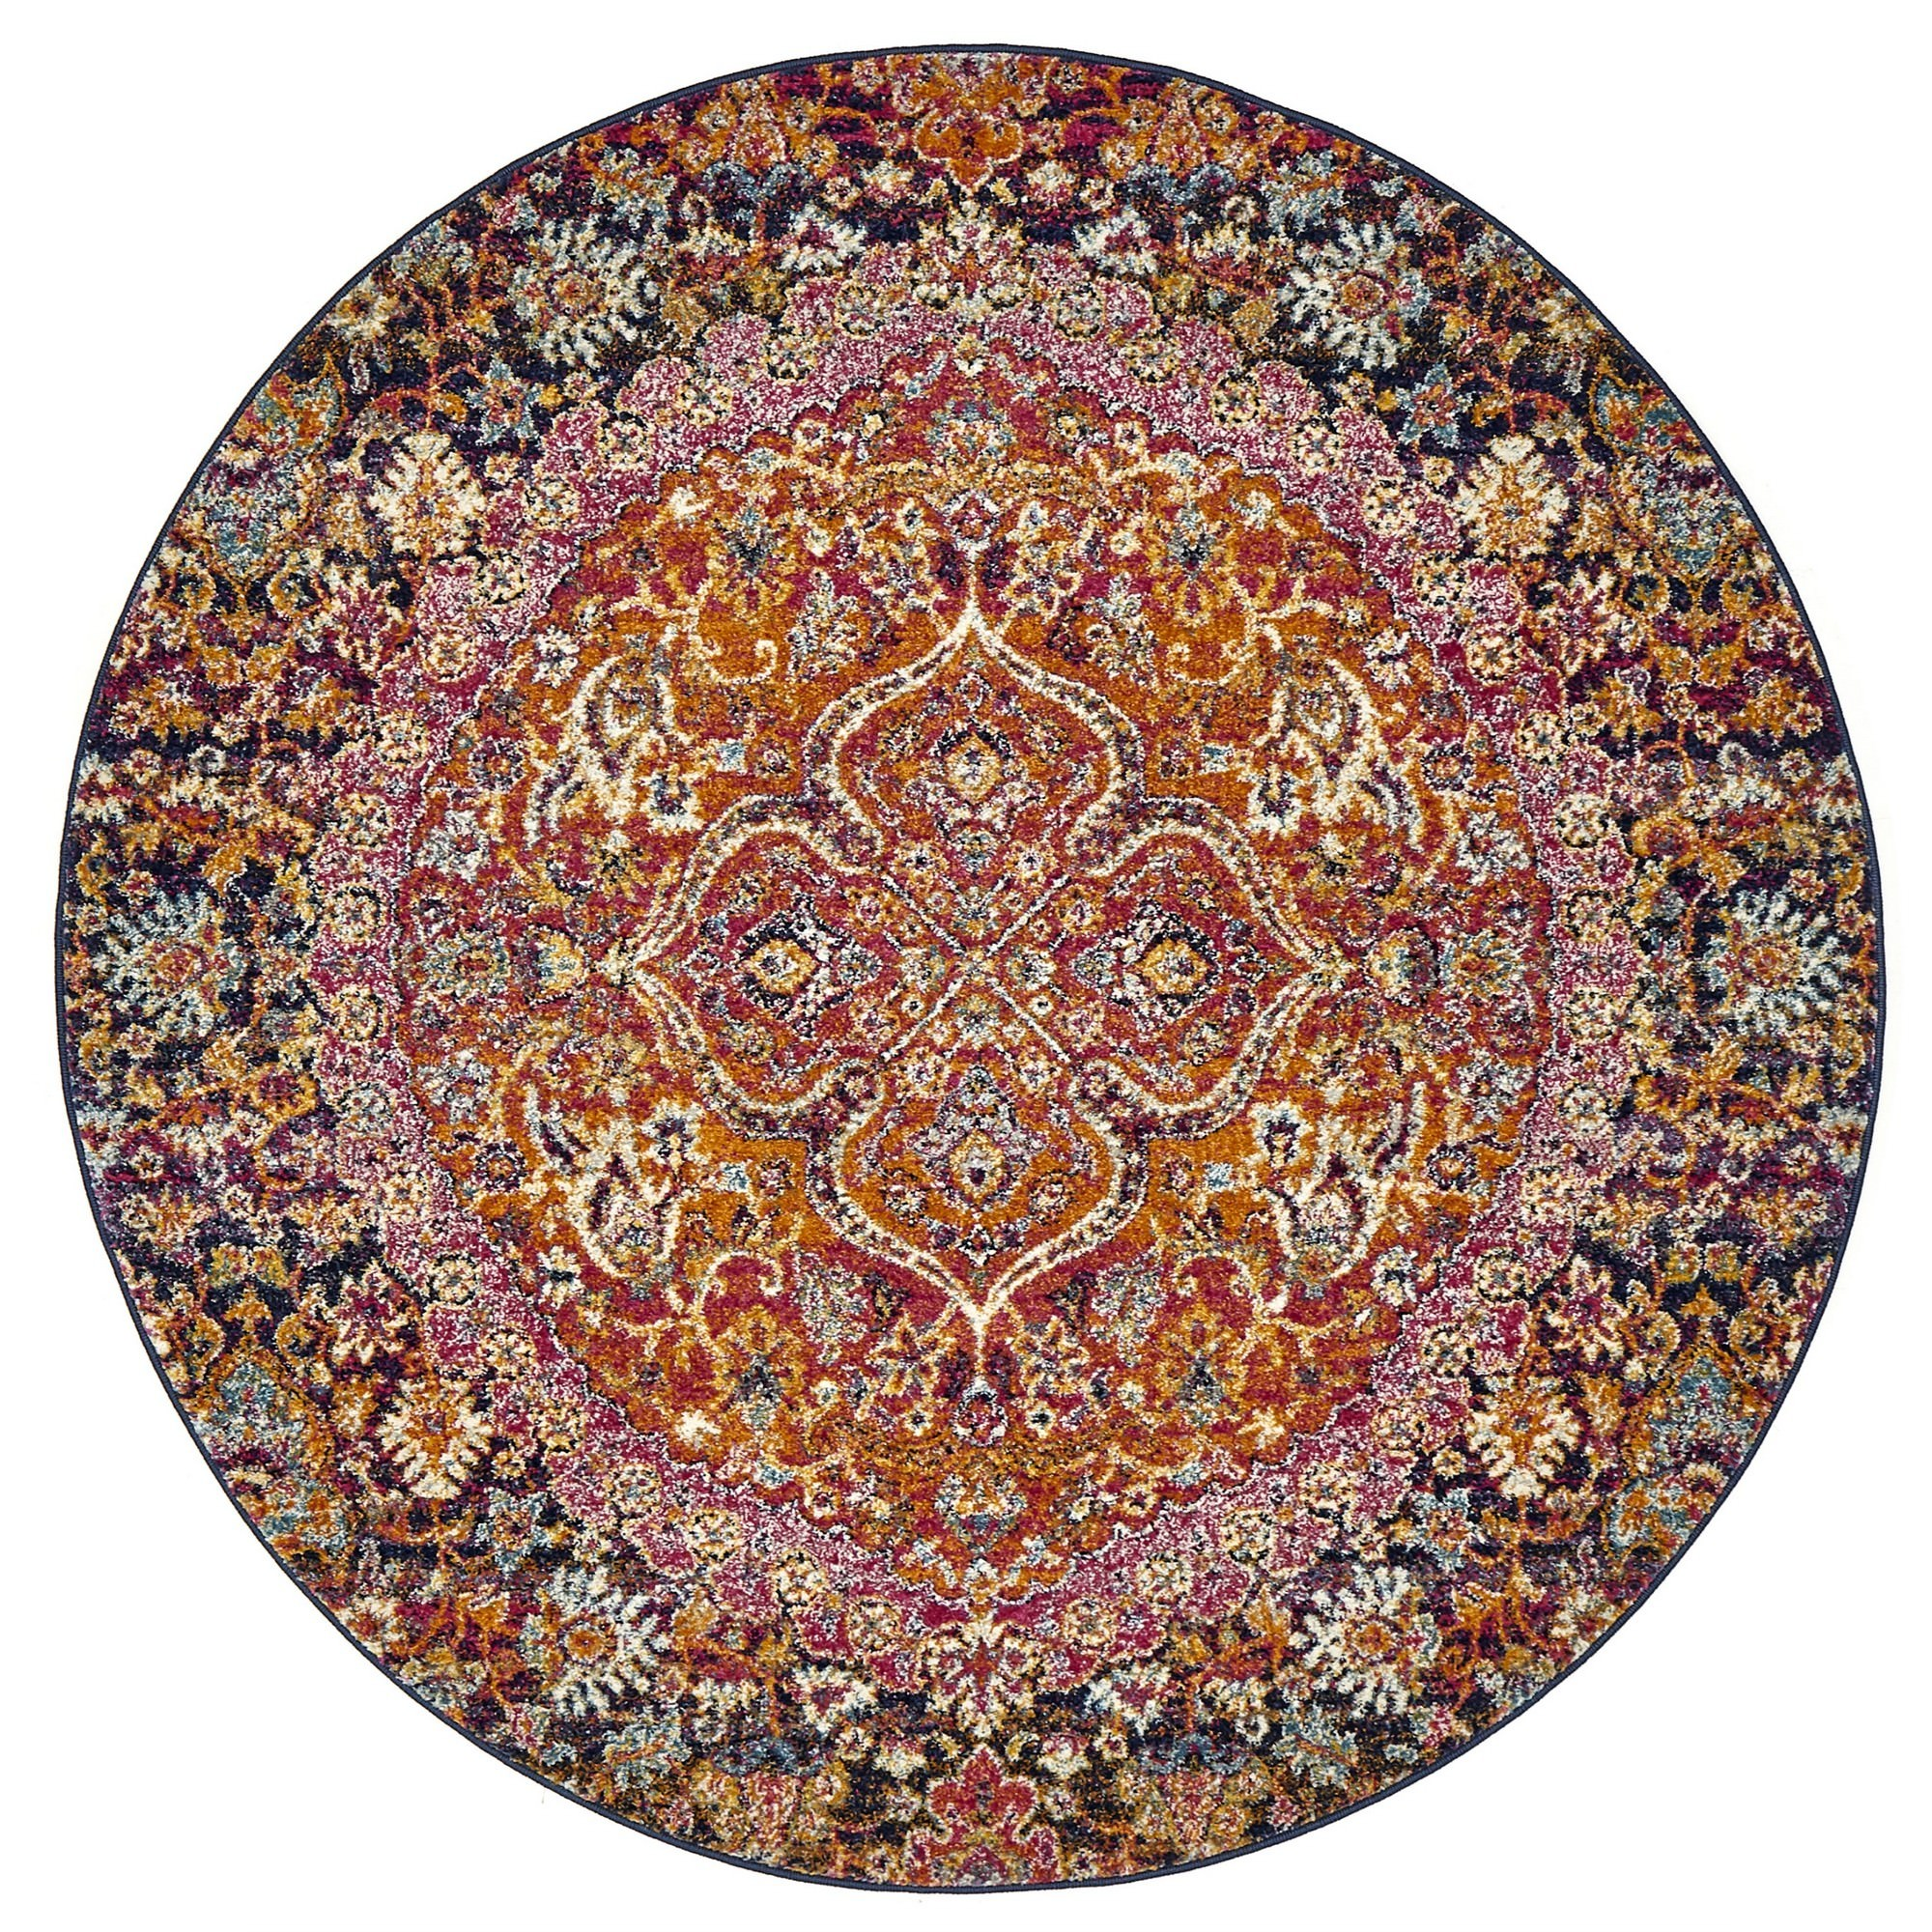 Museum Everleigh Transitional Round Rug, 200cm, Multi